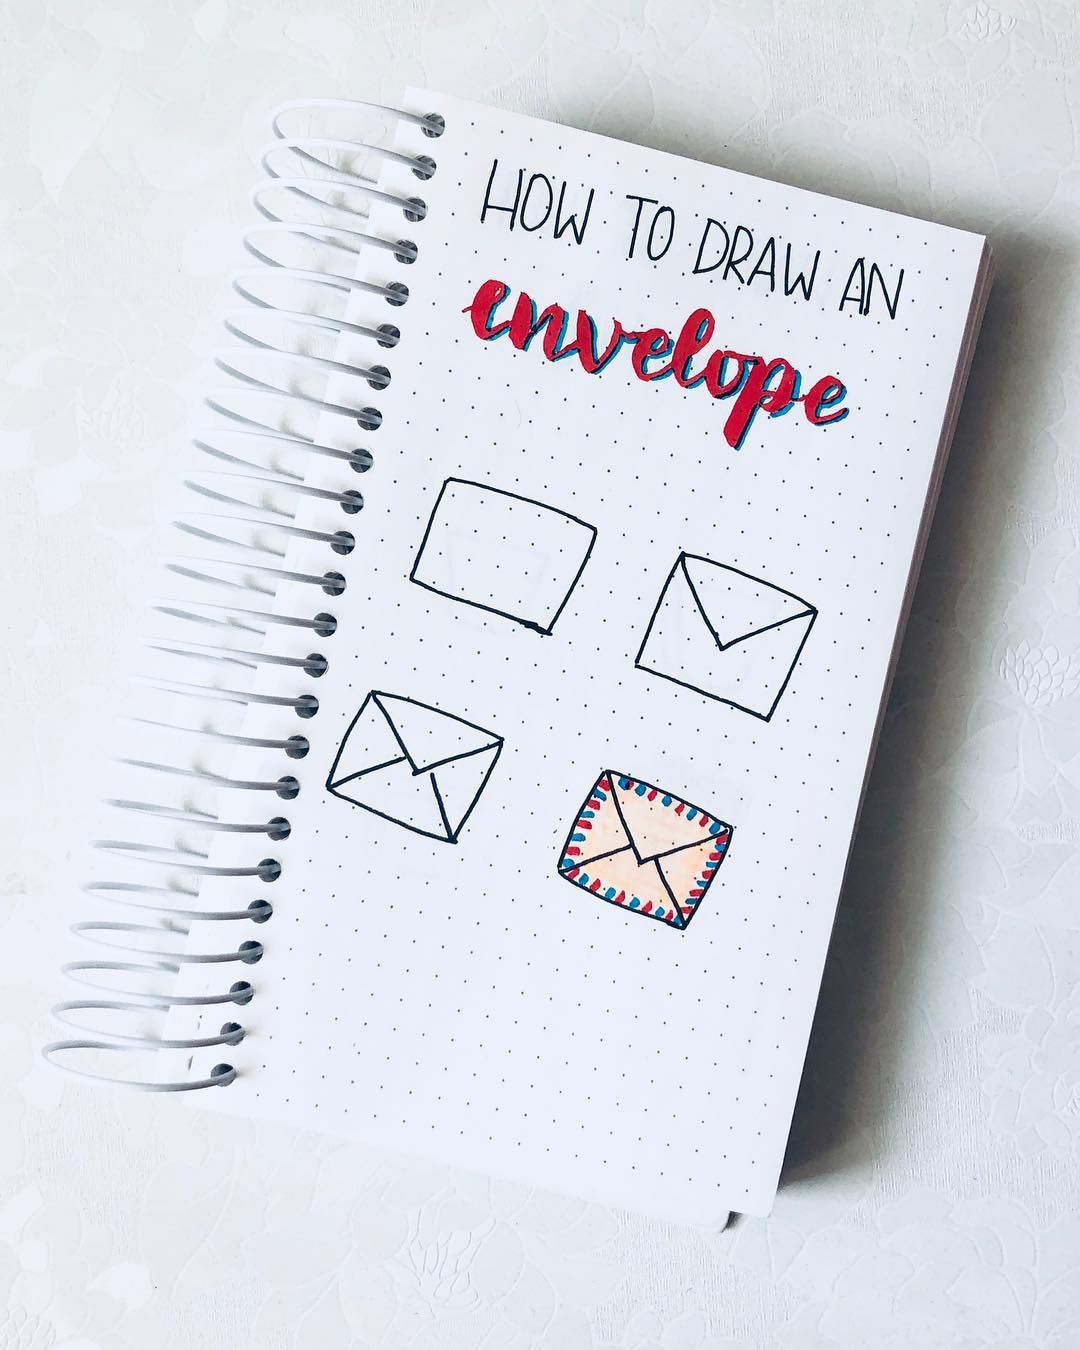 Junefolio On Instagram How To Draw An Envelope A Sealed